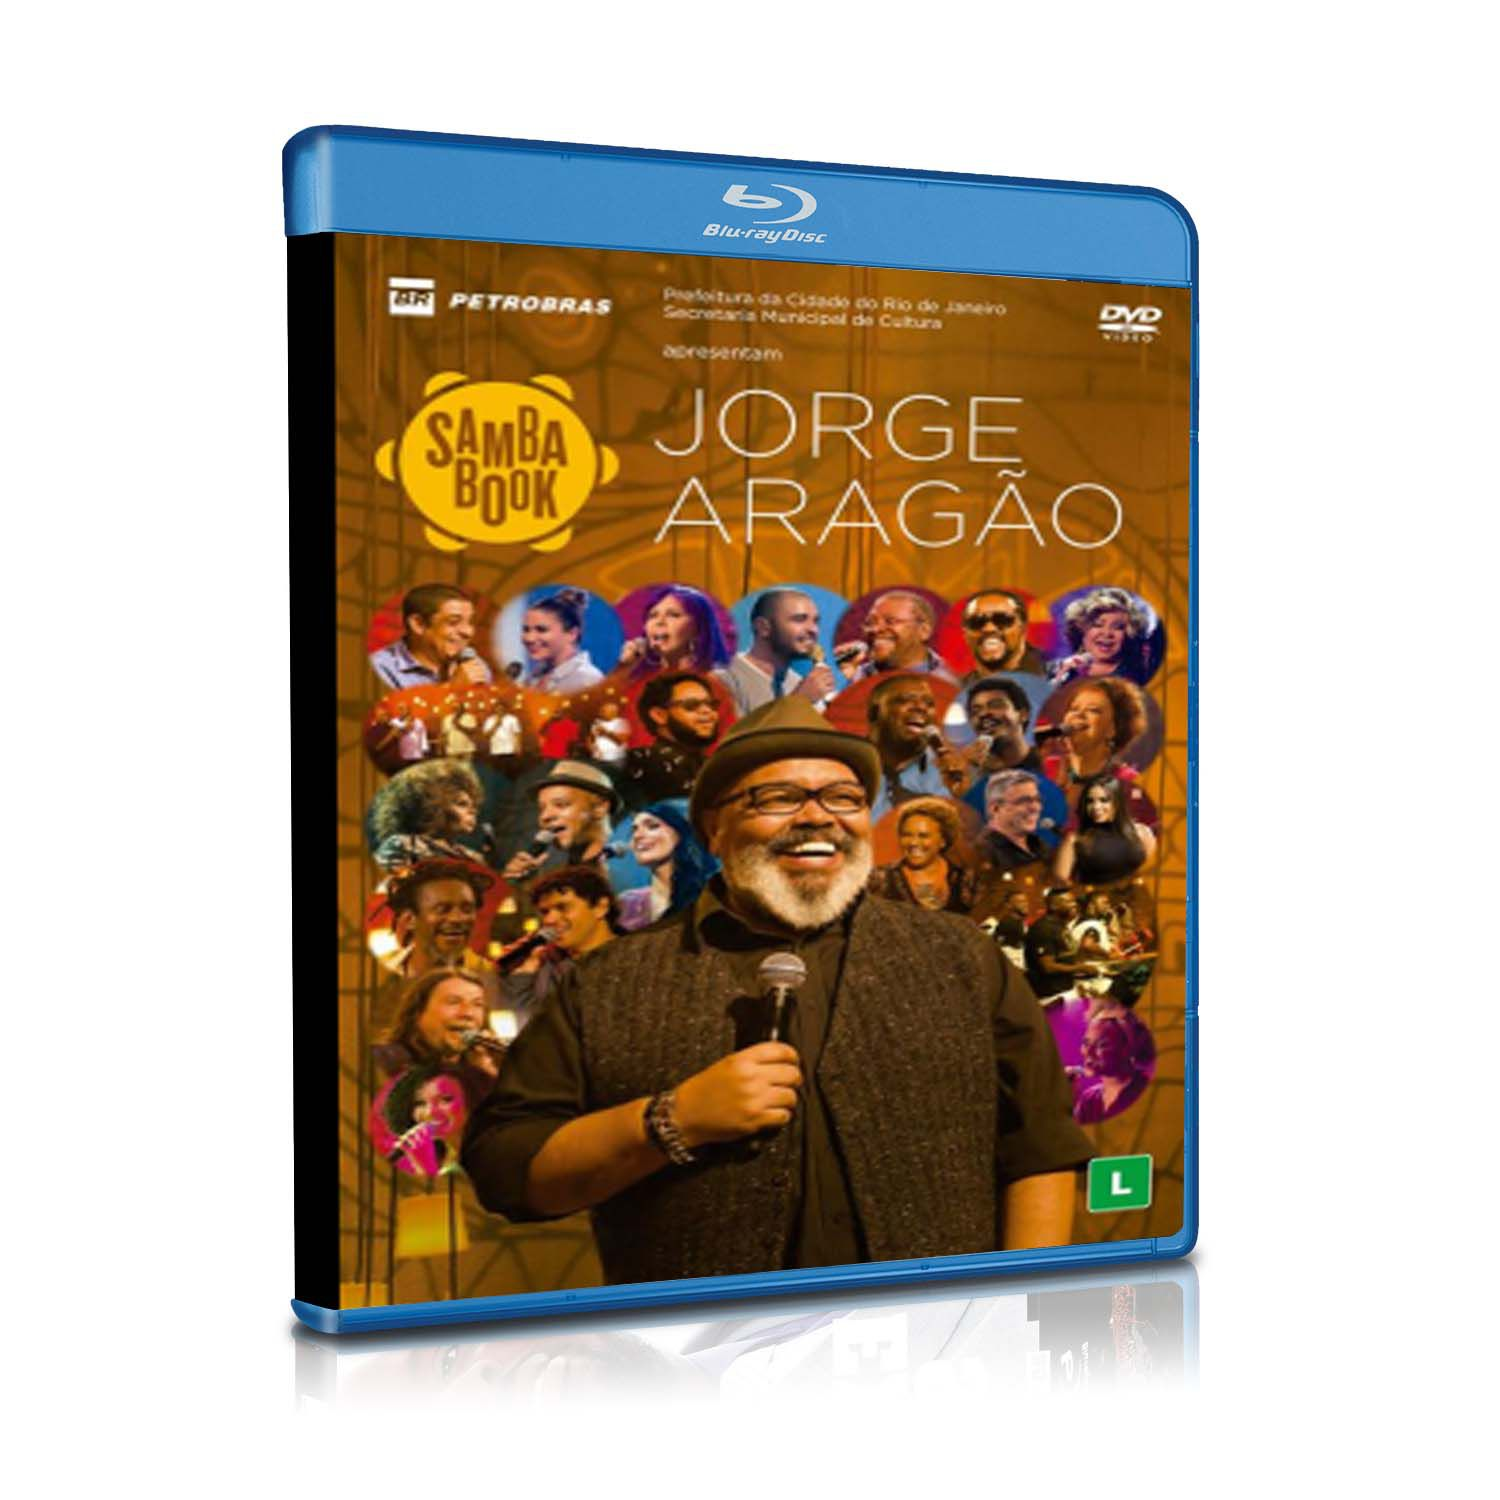 BLURAY JORGE ARAGÃO - SAMBA BOOK